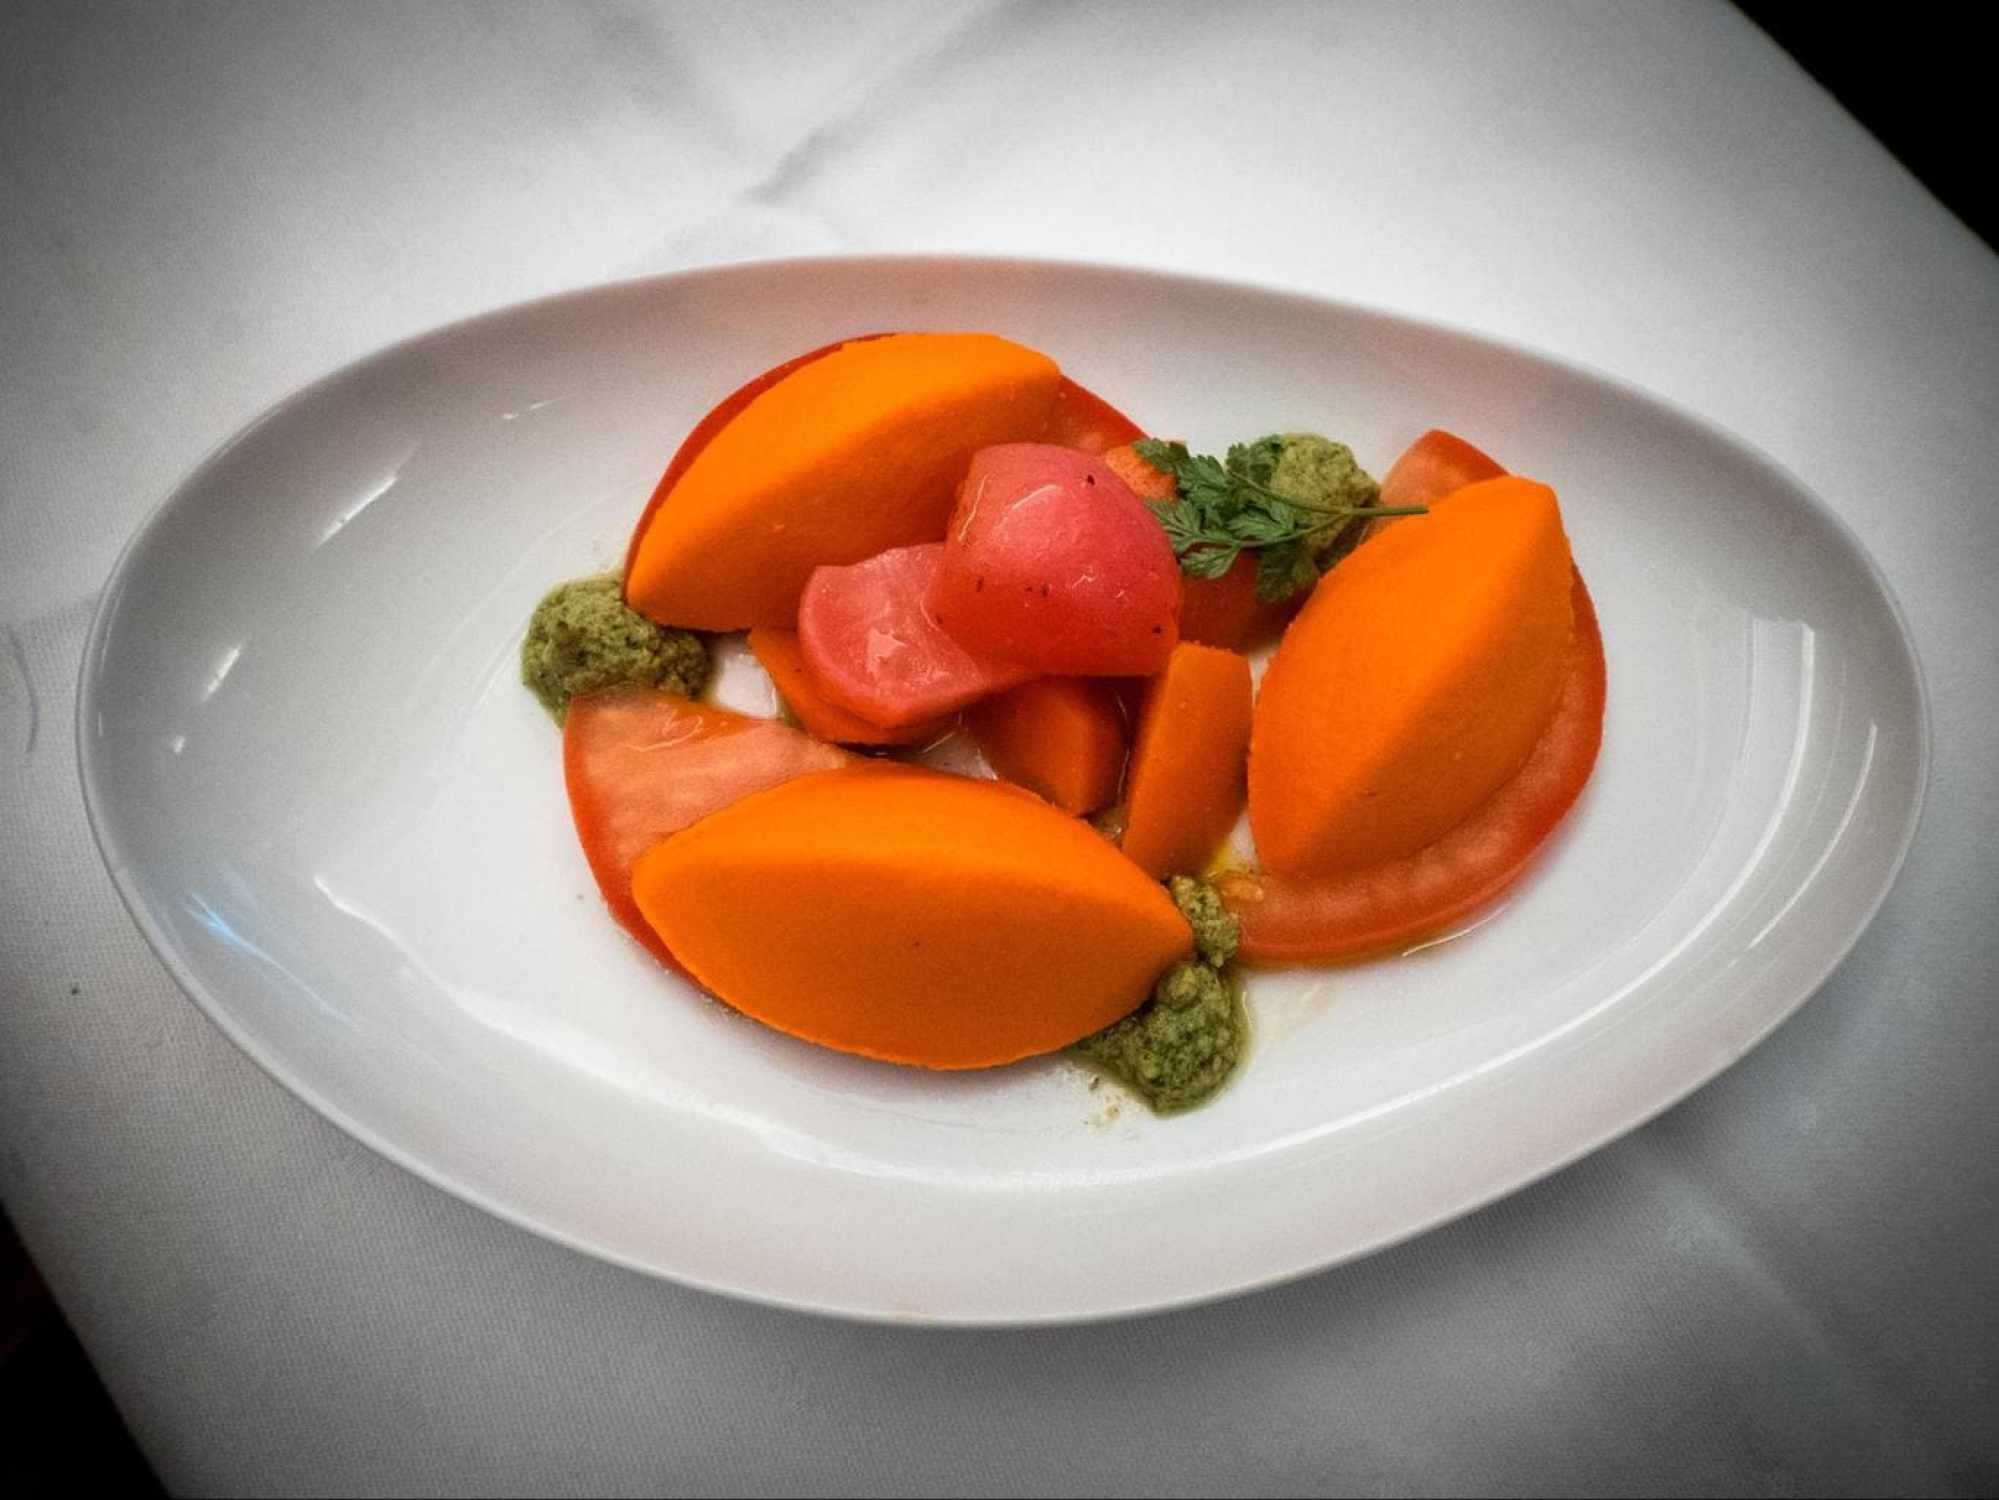 Lufthansa Business Class food - Red pepper quenelle